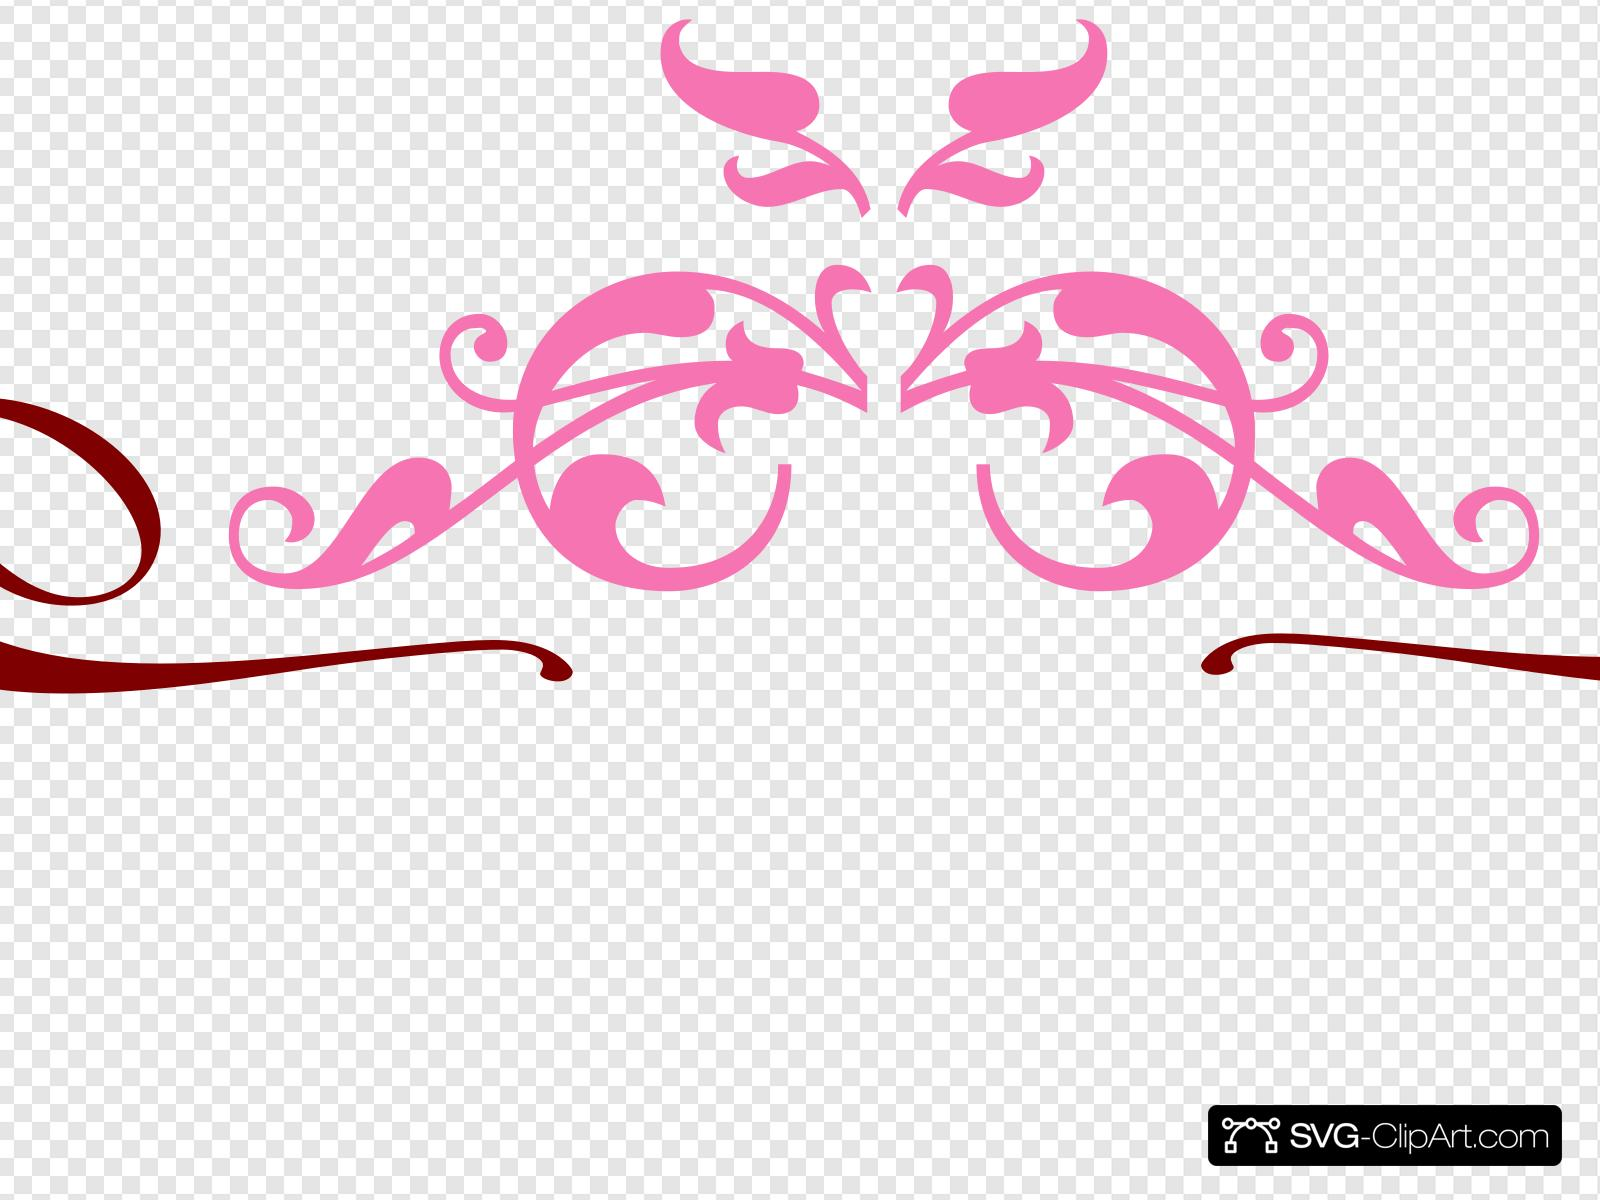 Brown scroll clipart jpg transparent stock Pink Brown Scroll Clip art, Icon and SVG - SVG Clipart jpg transparent stock